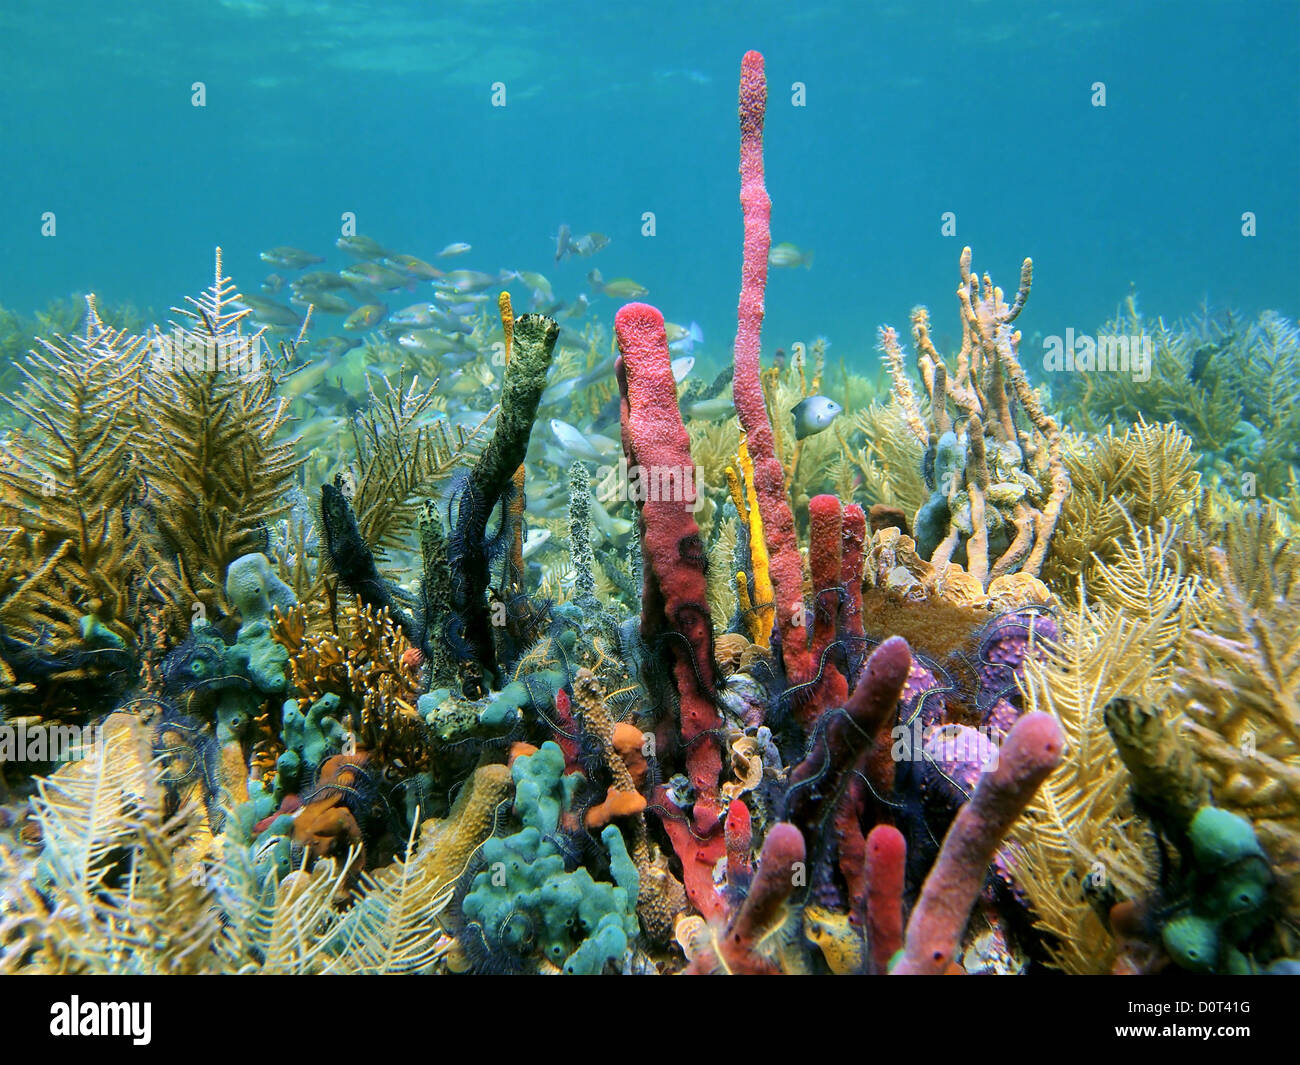 A thriving coral reef covered in corals and colorful sponges with abundant fish - Stock Image